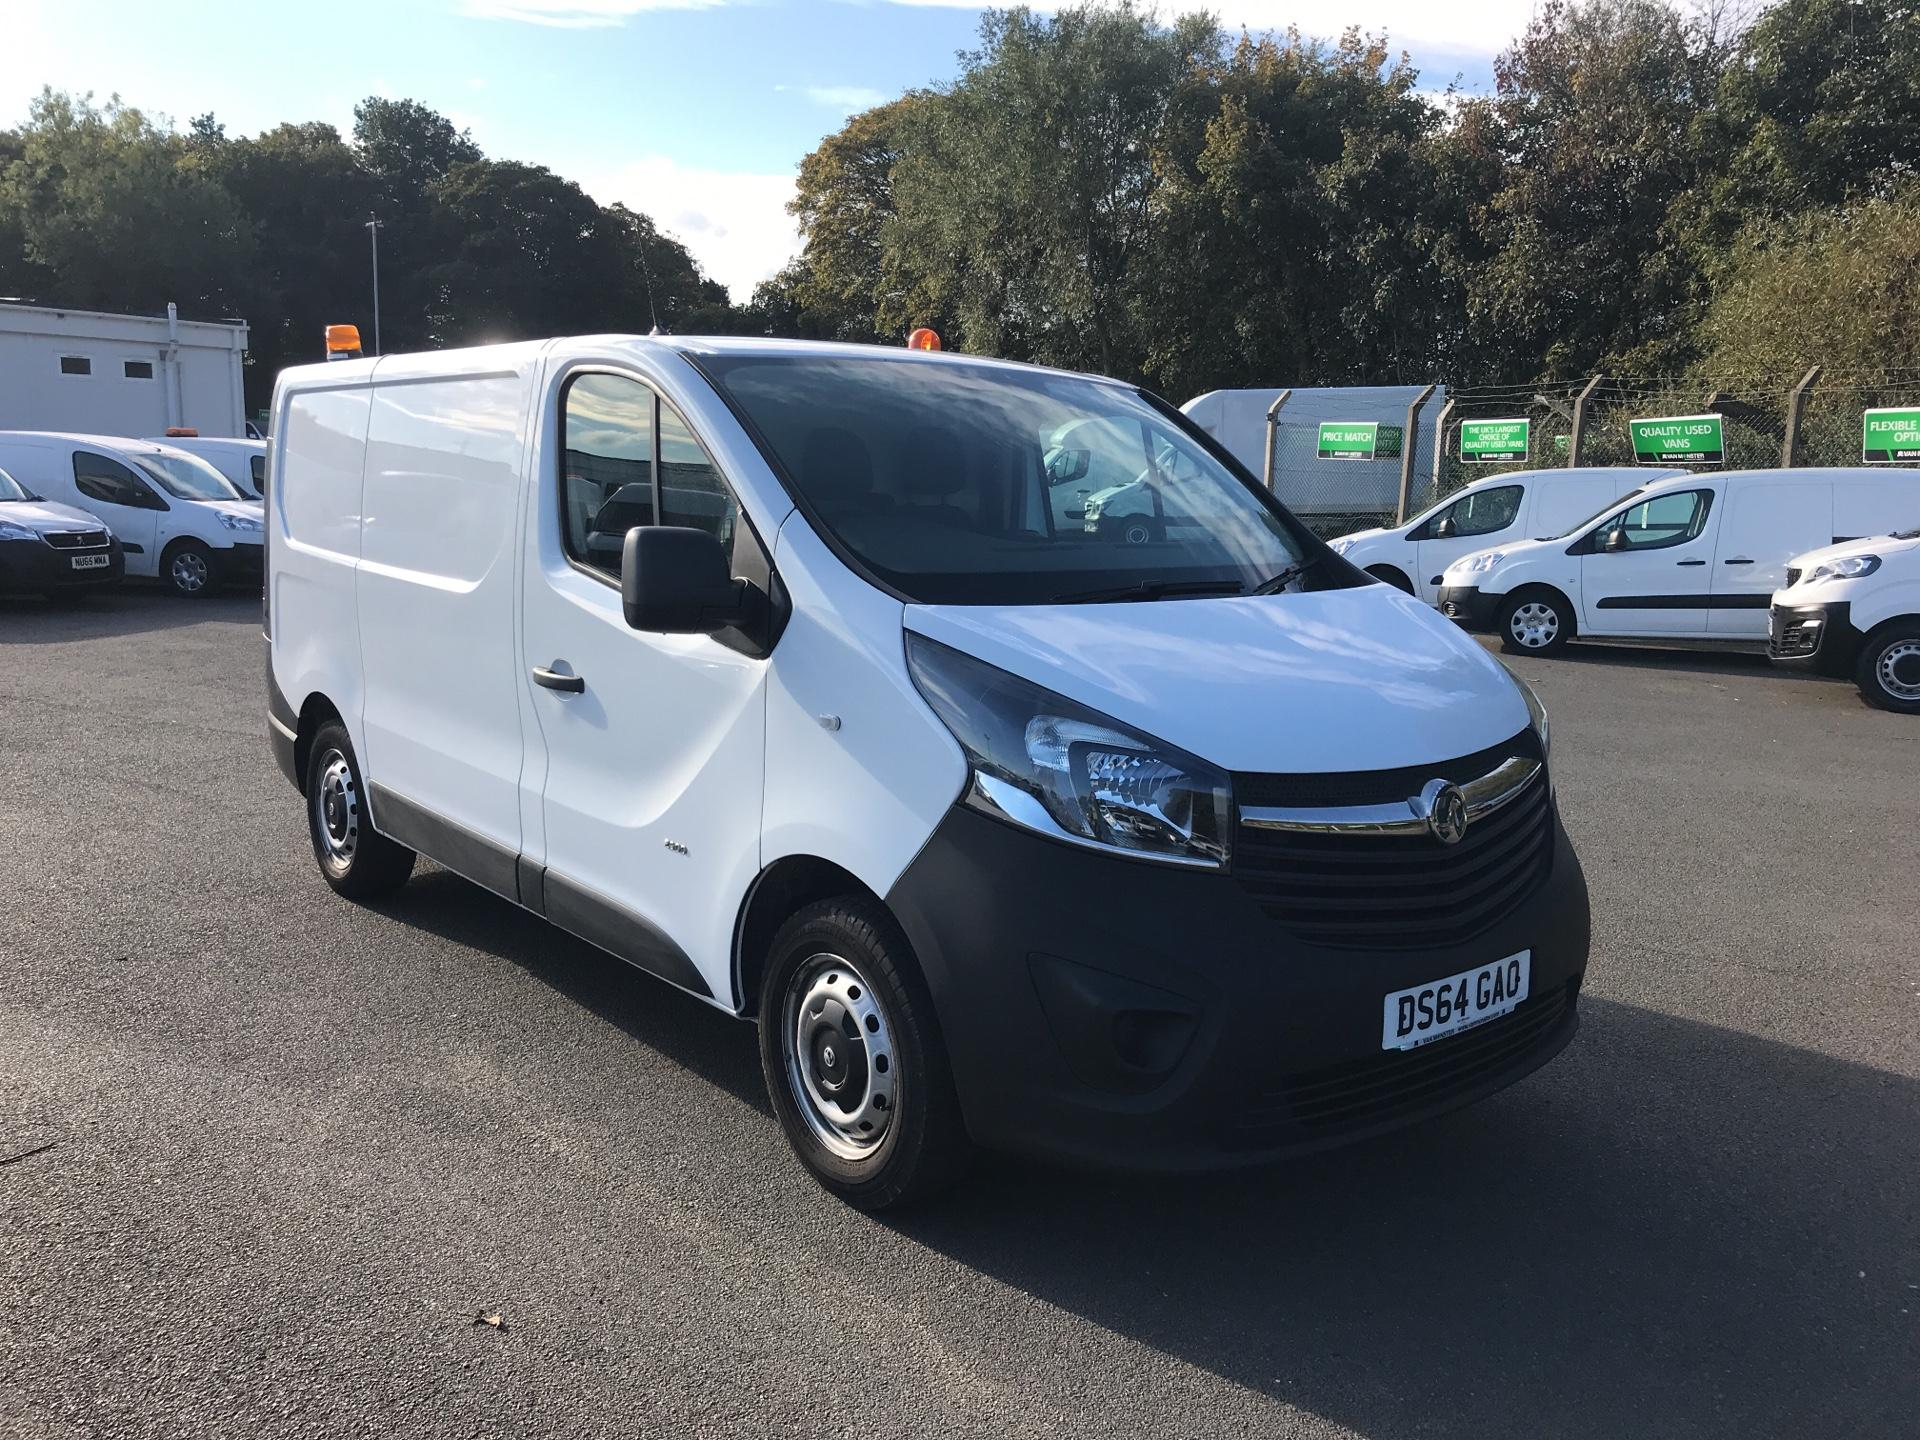 2015 Vauxhall Vivaro  L1 H1 2900 1.6 115PS EURO 5 *VALUE RANGE VEHICLE - CONDITION REFLECTED IN PRICE* (DS64GAO)